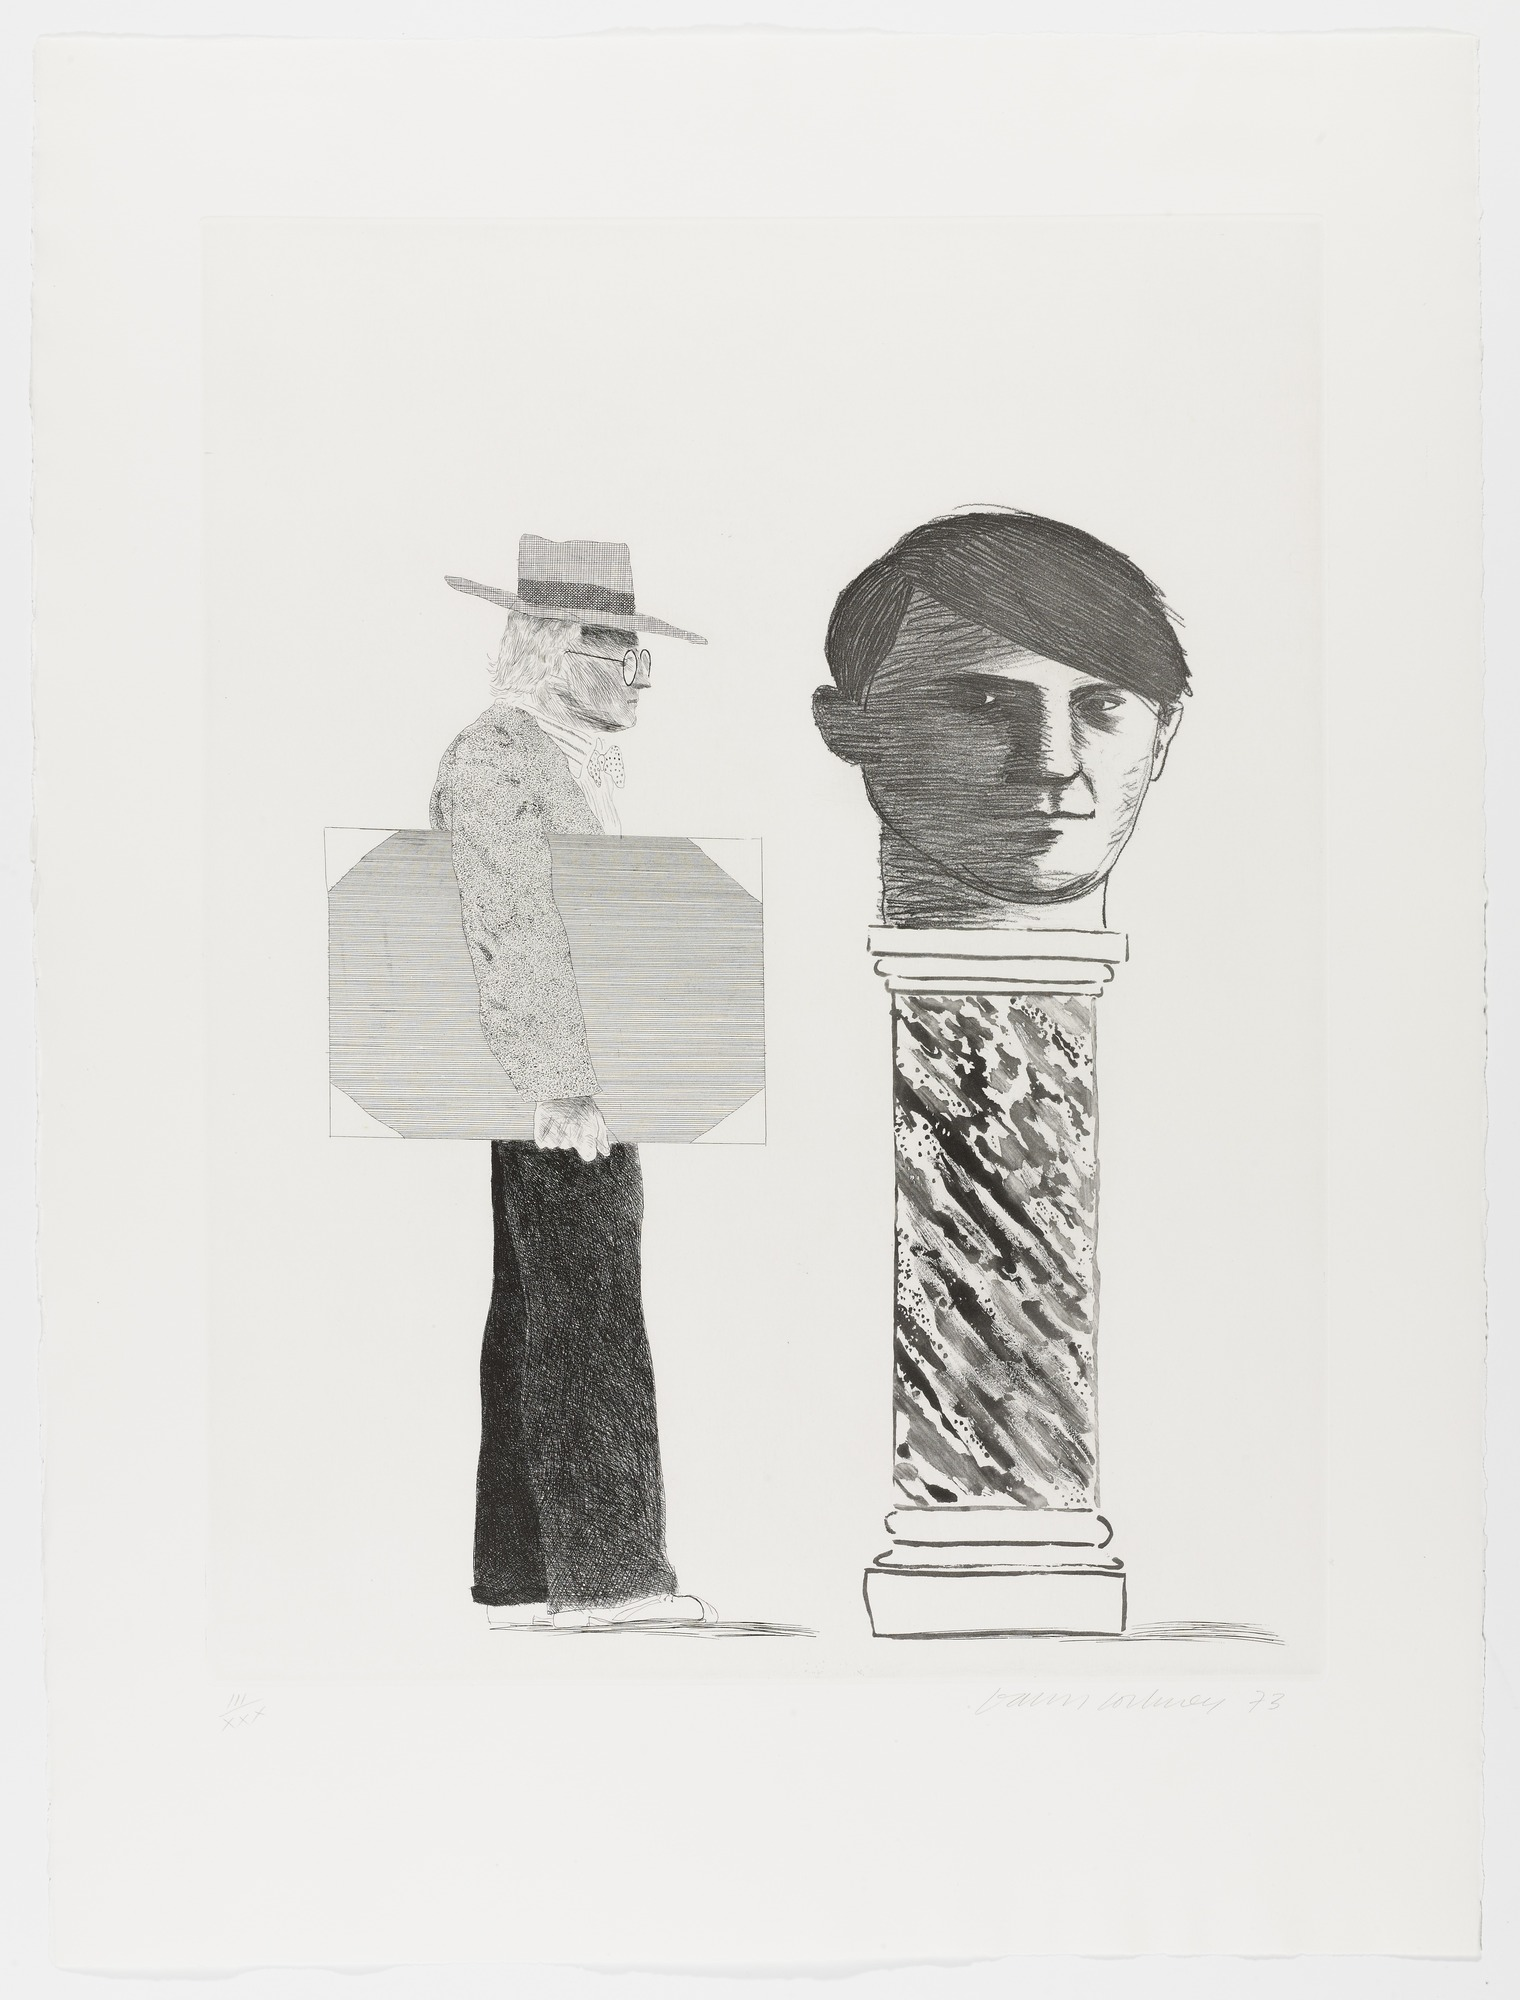 David Hockney, The Student - Homage to Picasso, 1973.jpg